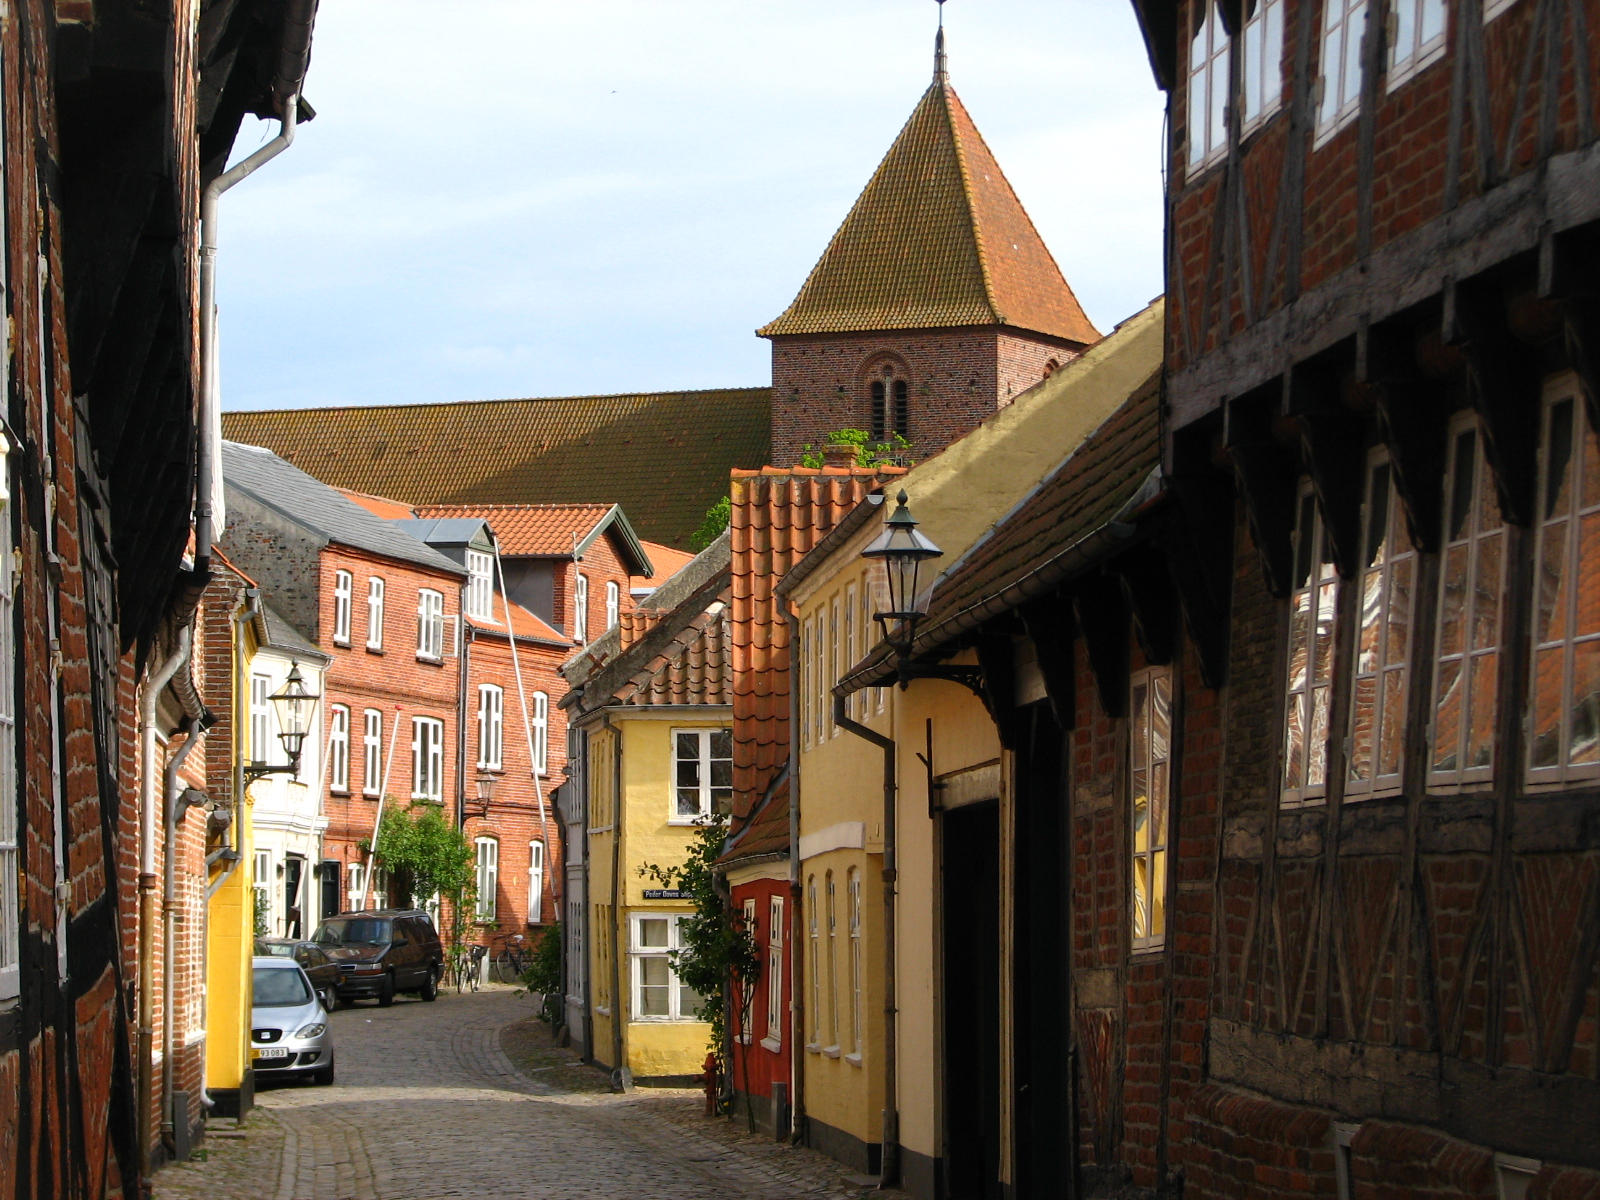 The beautiful Ribe town is the oldest Danish town dating back to the Viking Age